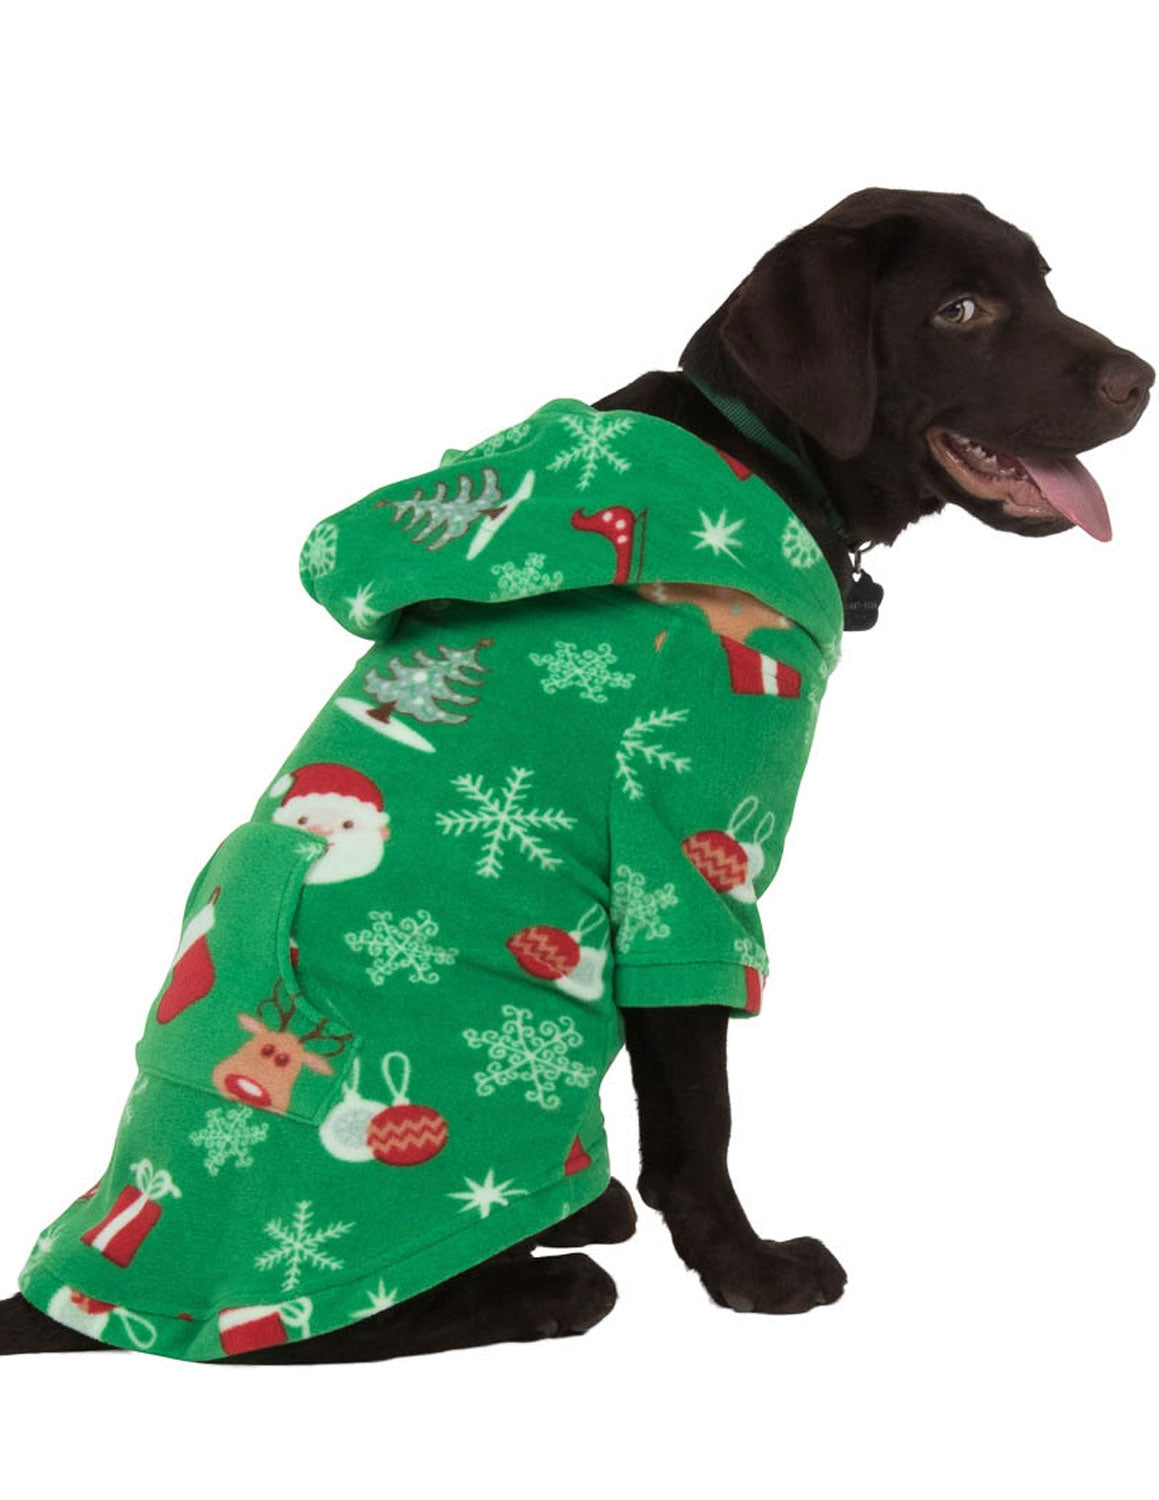 Tis The Season Pet Pjs Fleece Hoodie